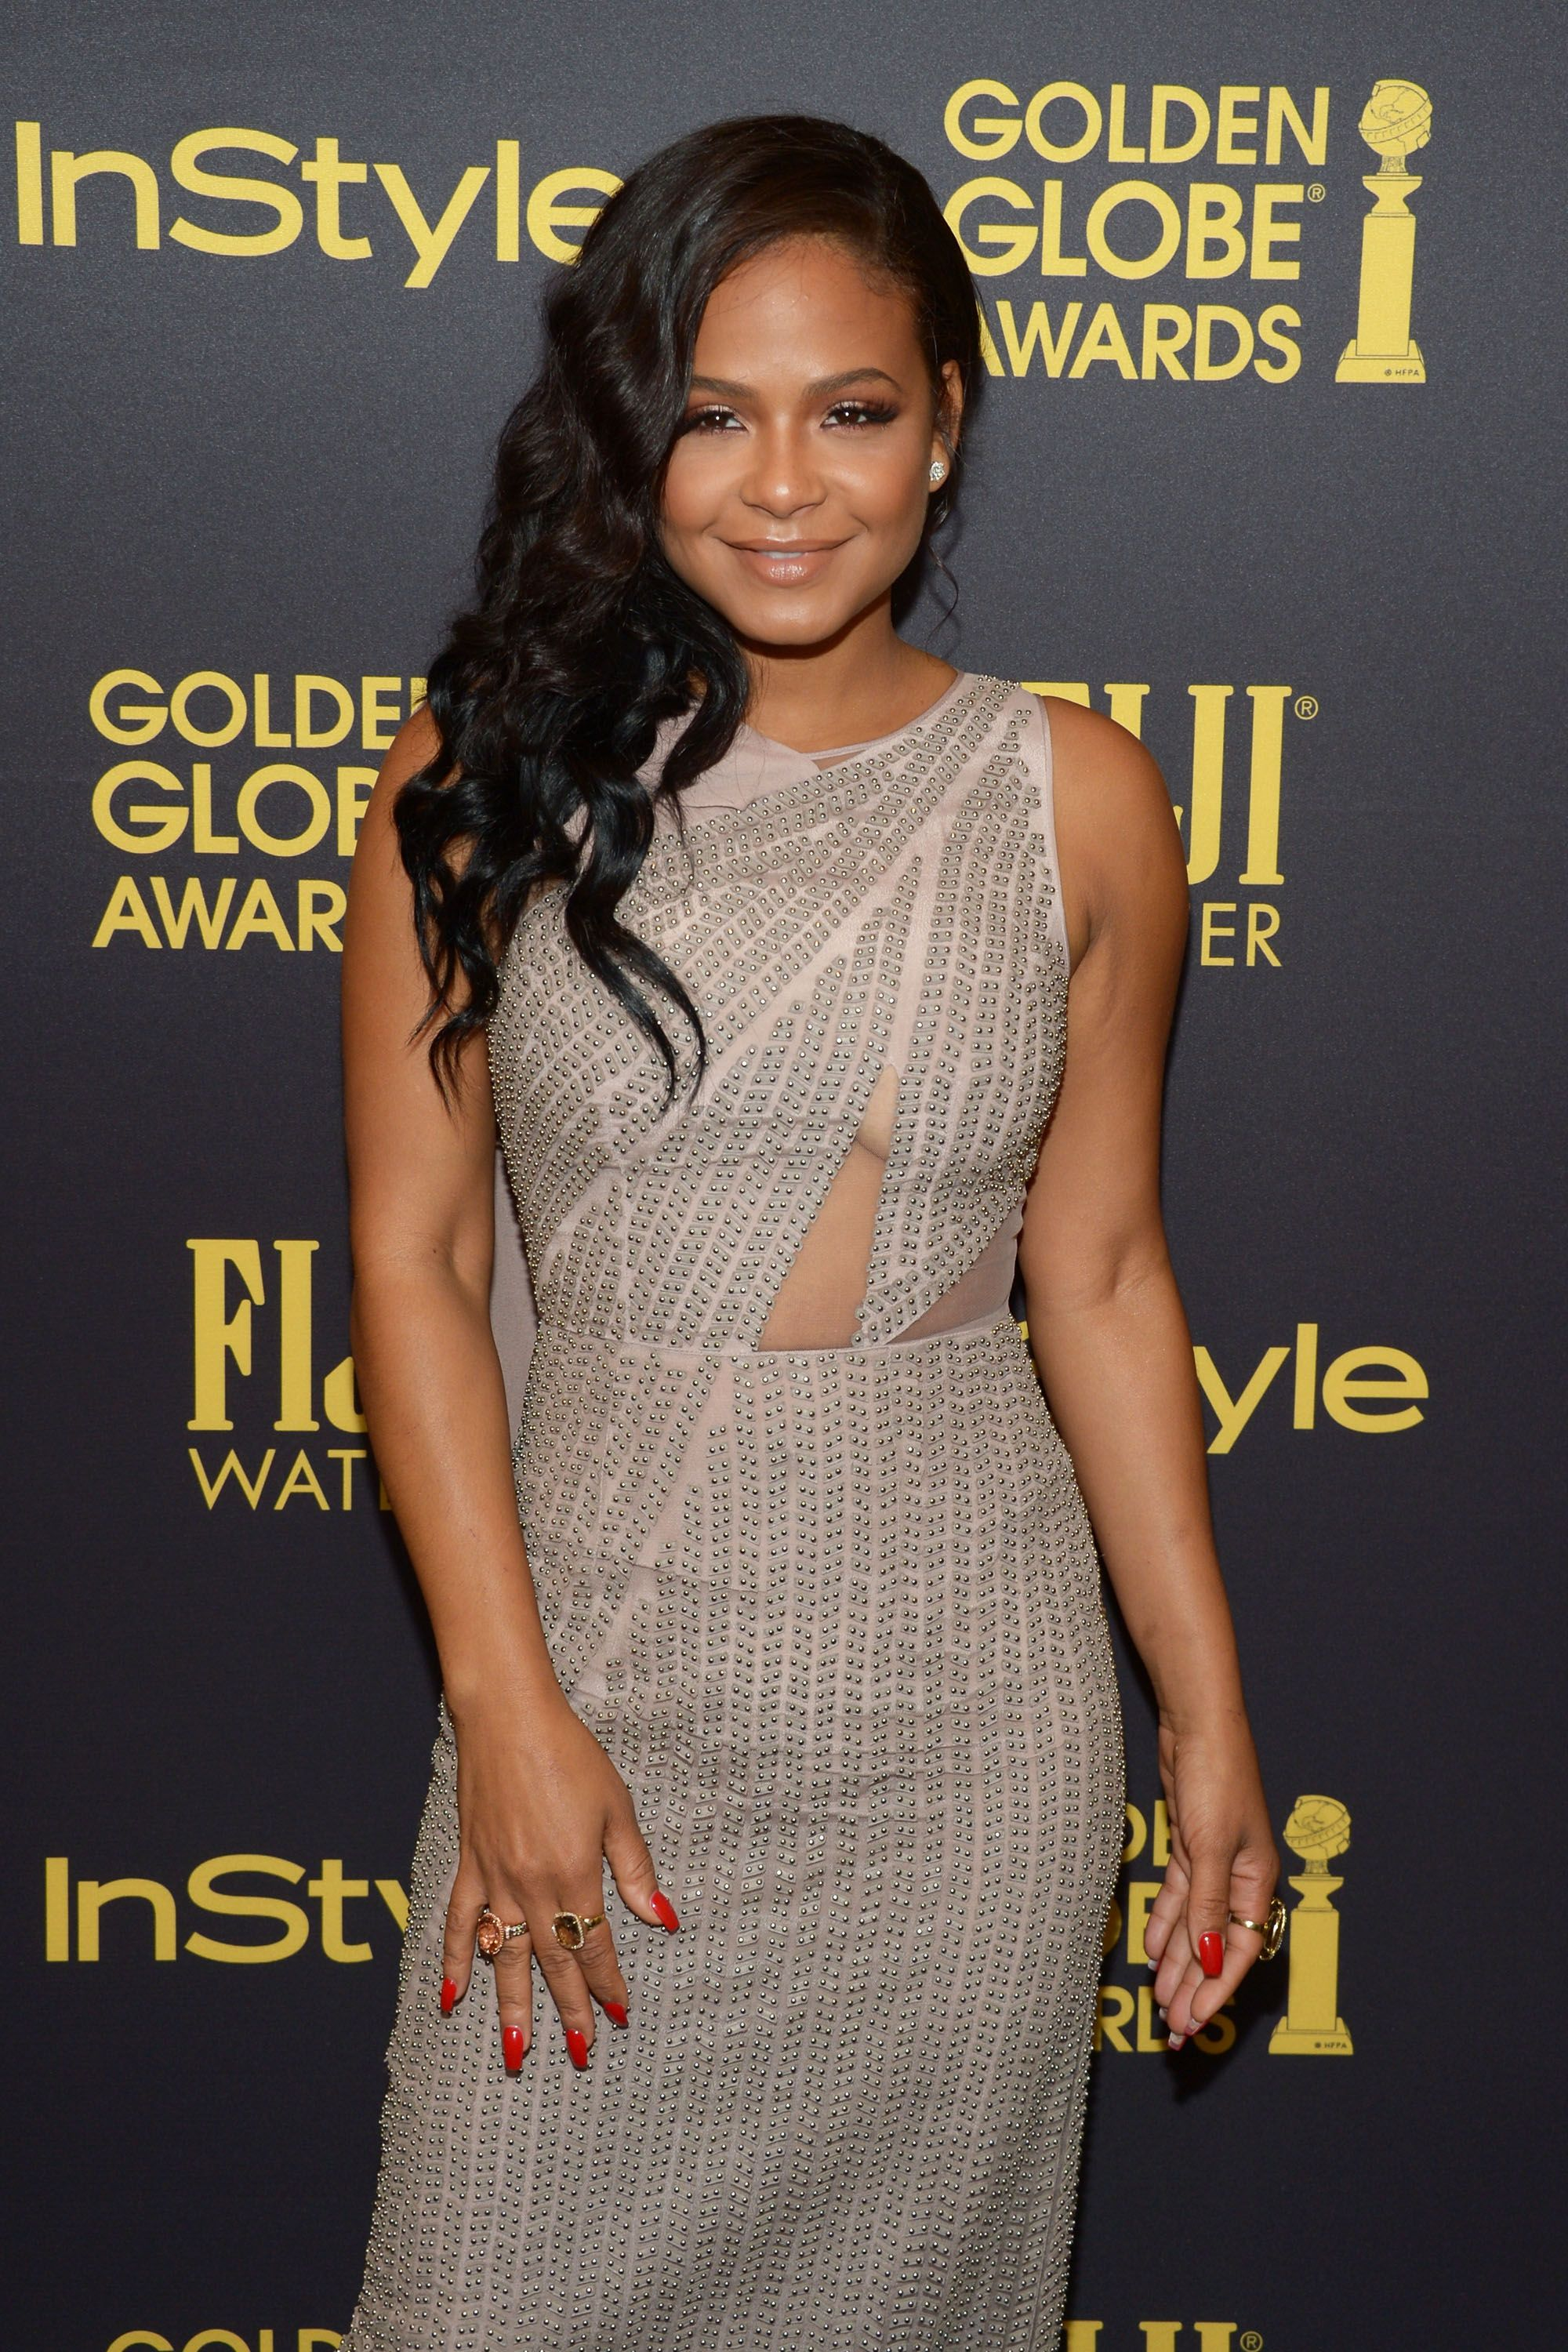 Christina Milian at the Golden Globe Awards. | Source: Getty Images